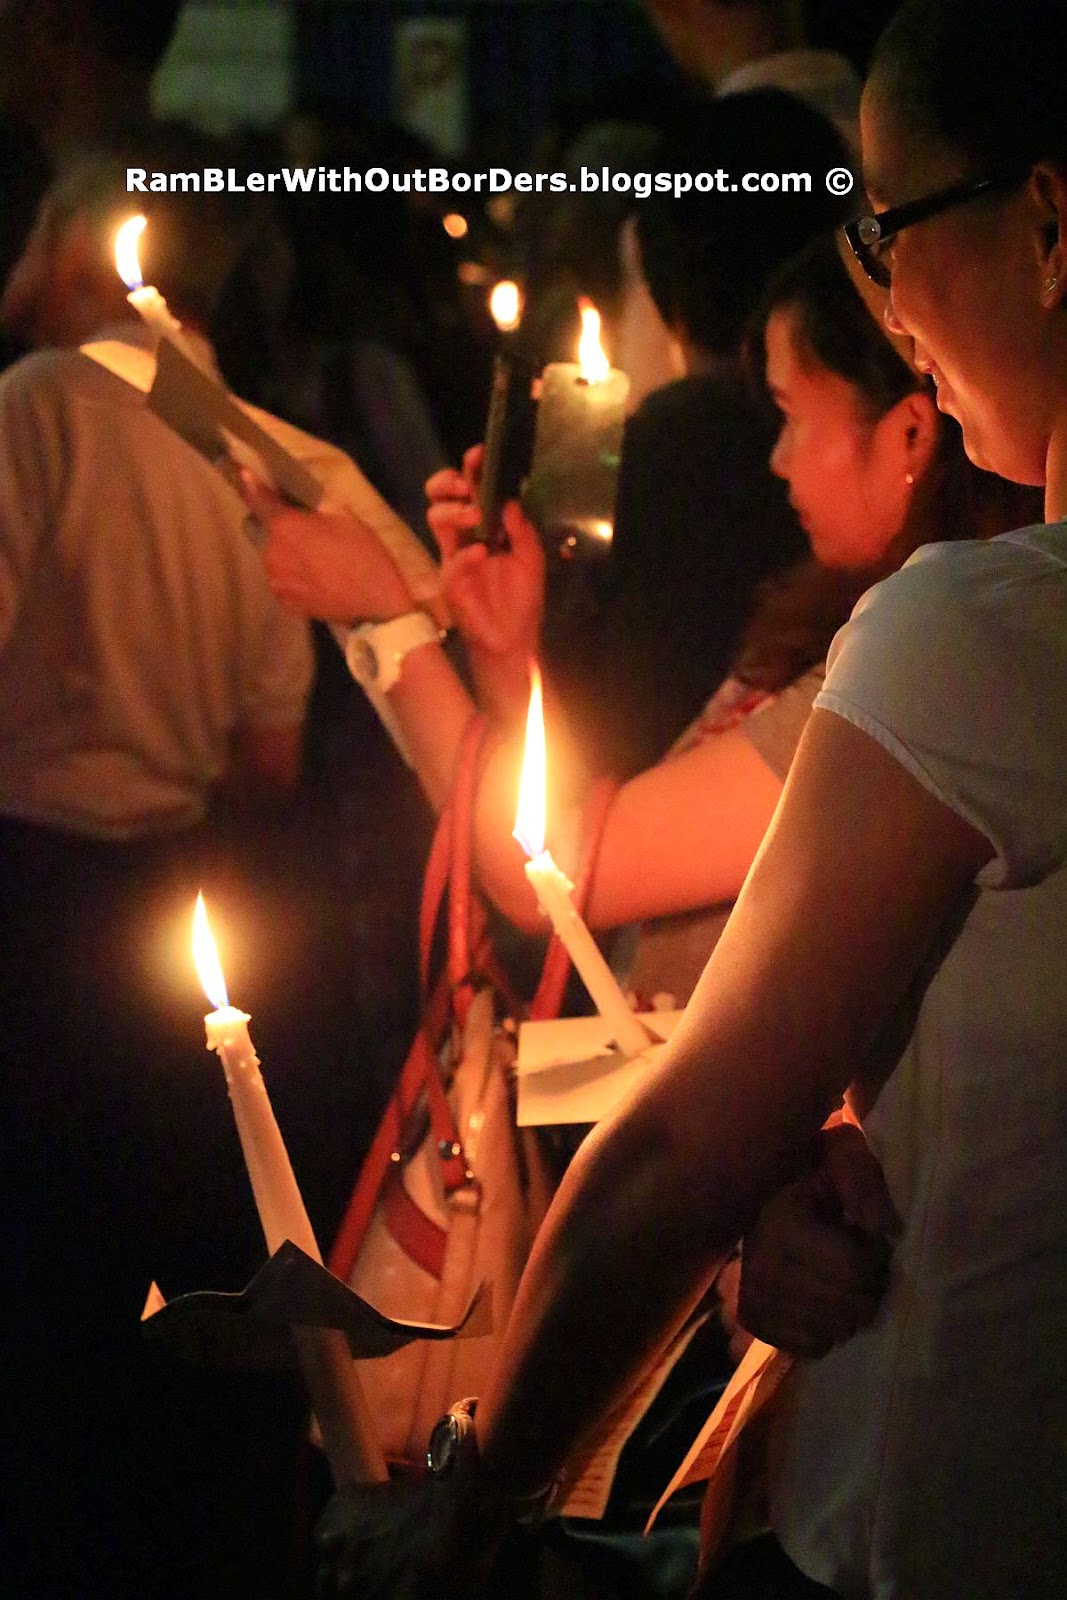 Attendant of Good Friday Candle-Light Procession, St Joseph's Church, Victoria St, Singapore